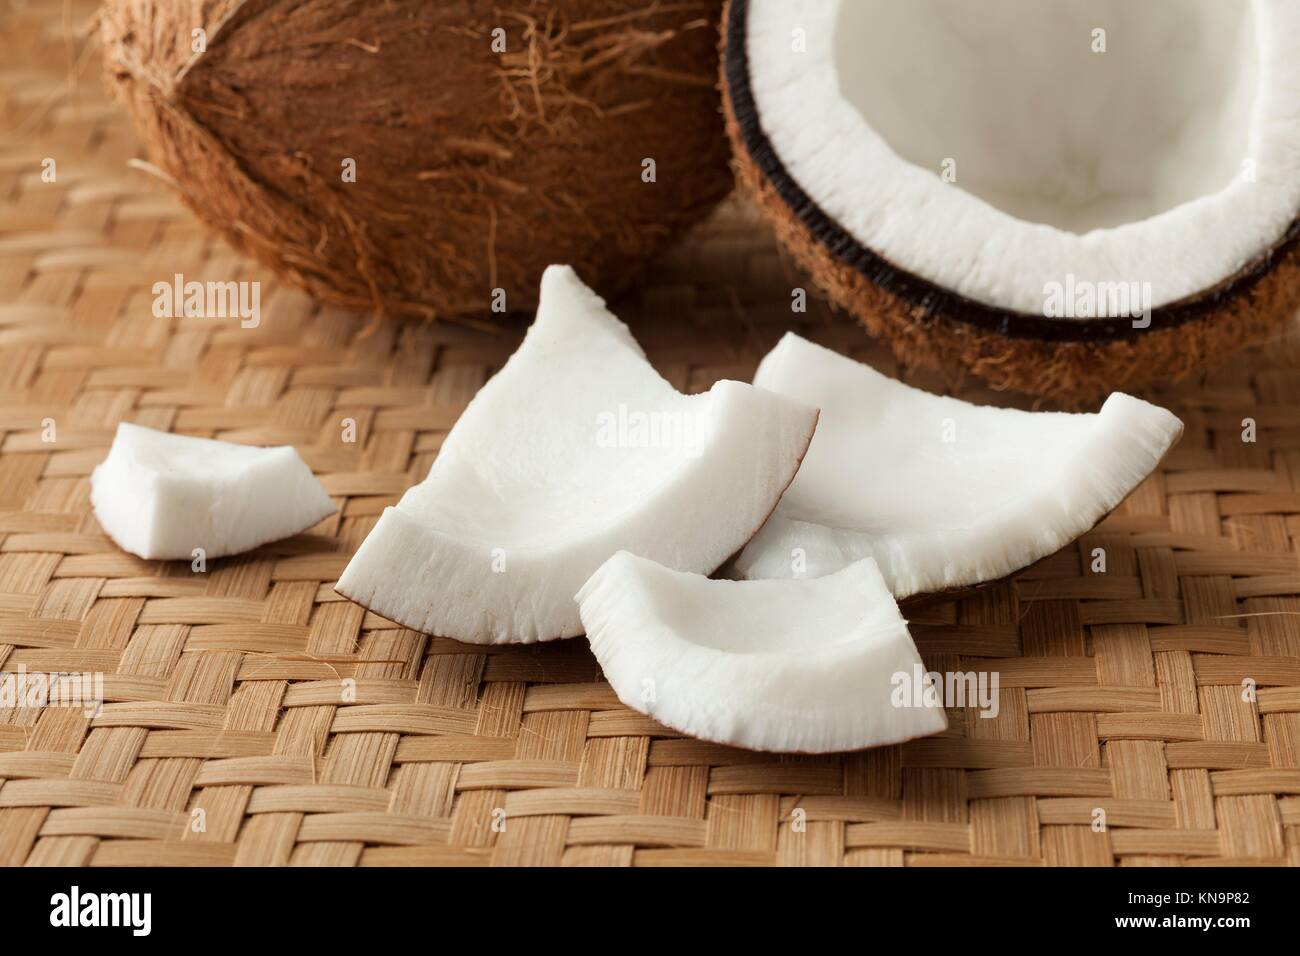 Cracked fresh coconut with pieces. - Stock Image